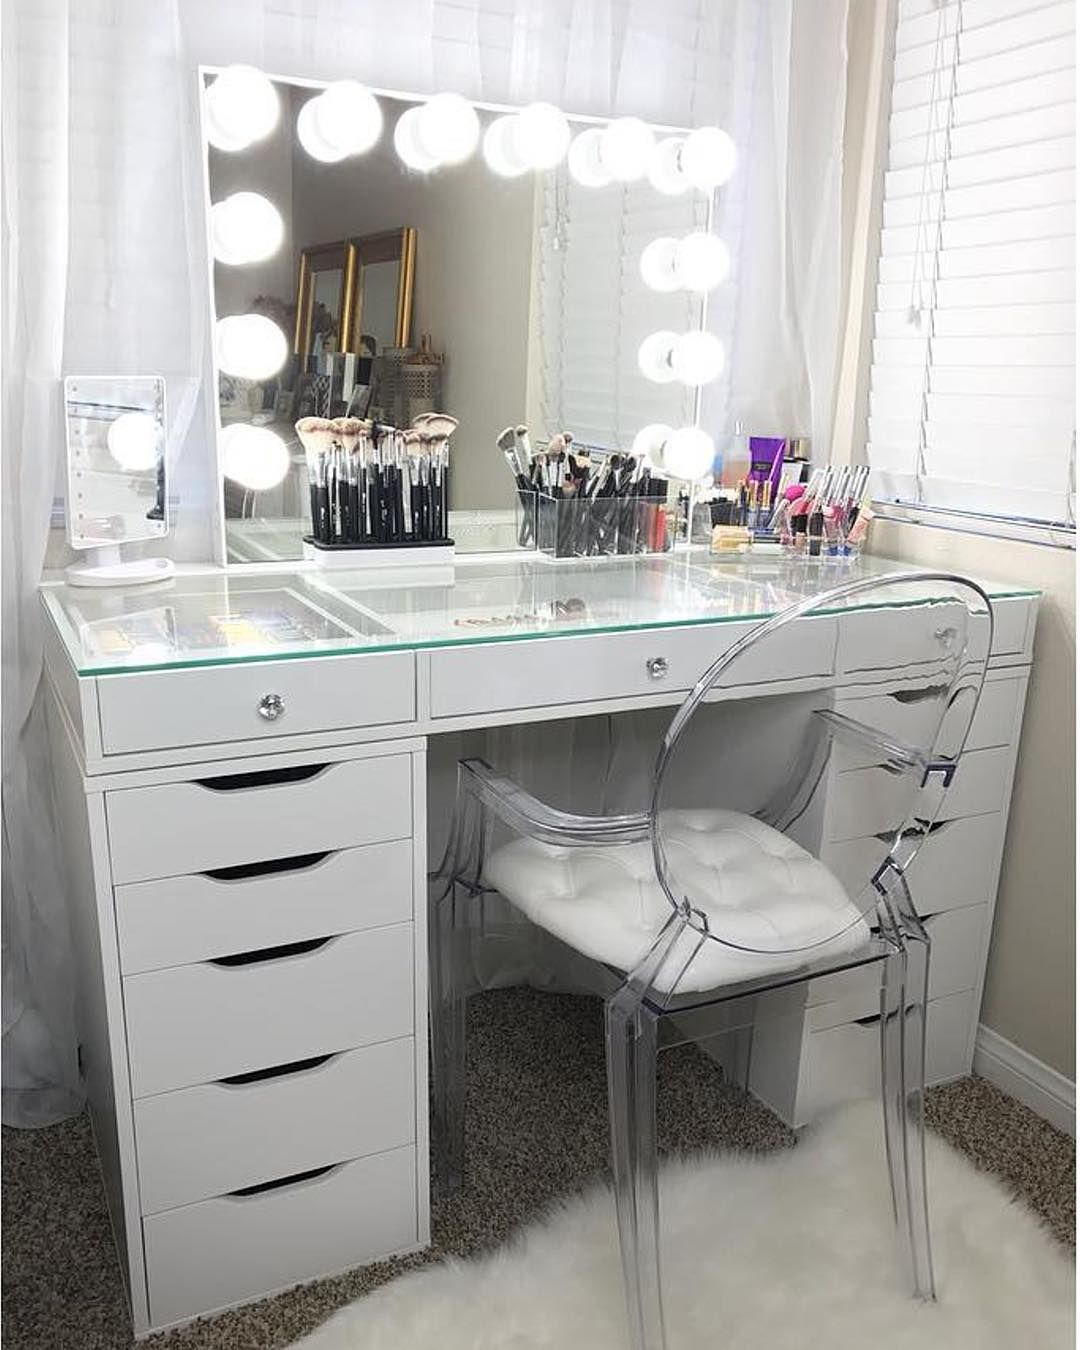 The Impressions Vanity® Hollywood Glow® Plus is our newest